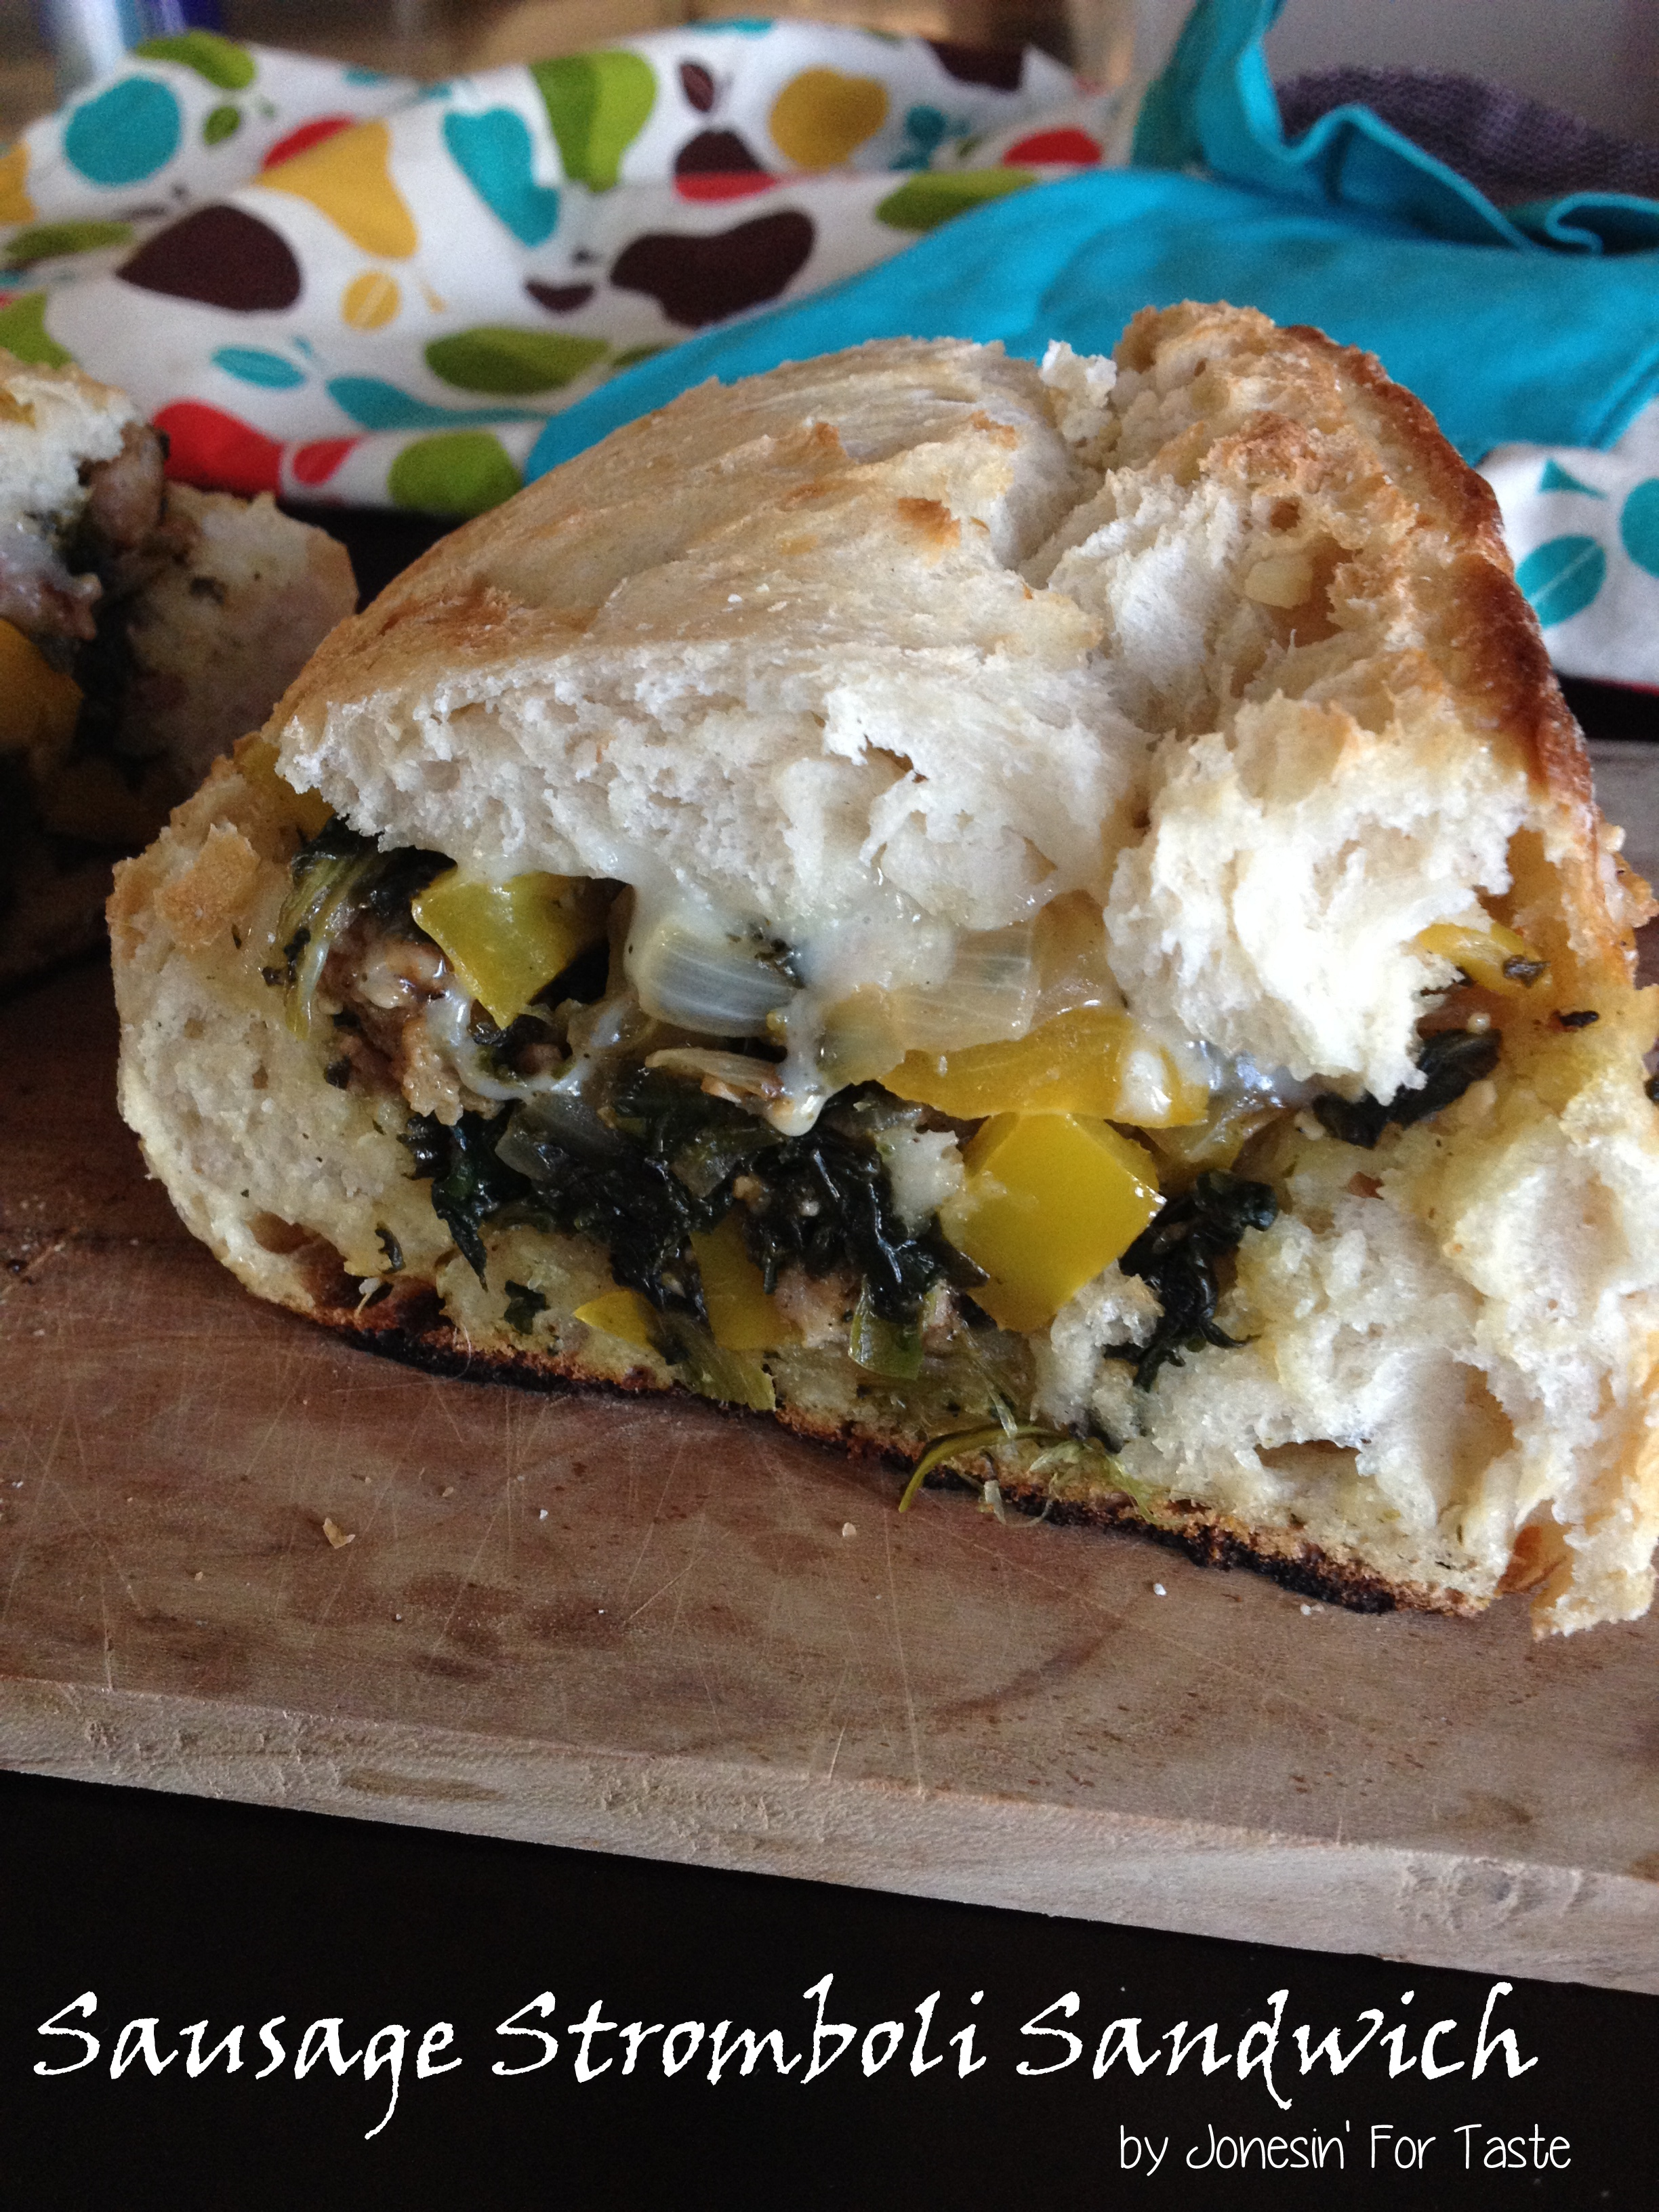 Sausage, bell peppers, spinach, onion, and provolone cheese are baked together for a delicious hot sandwich.